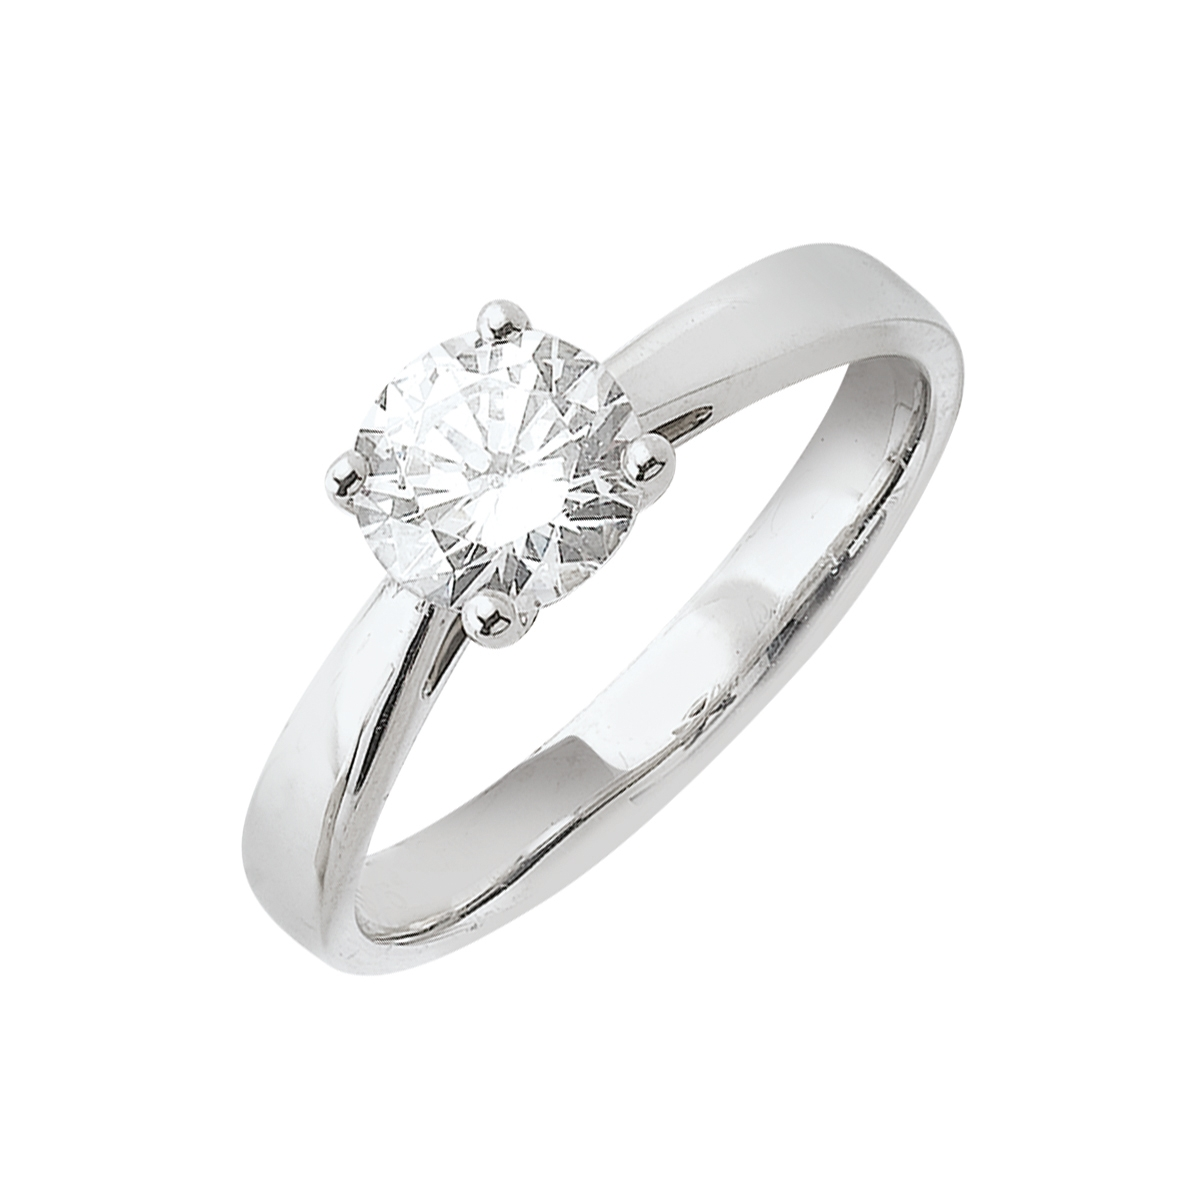 Solitaire or blanc - Diamans synthétique 1,00 carat